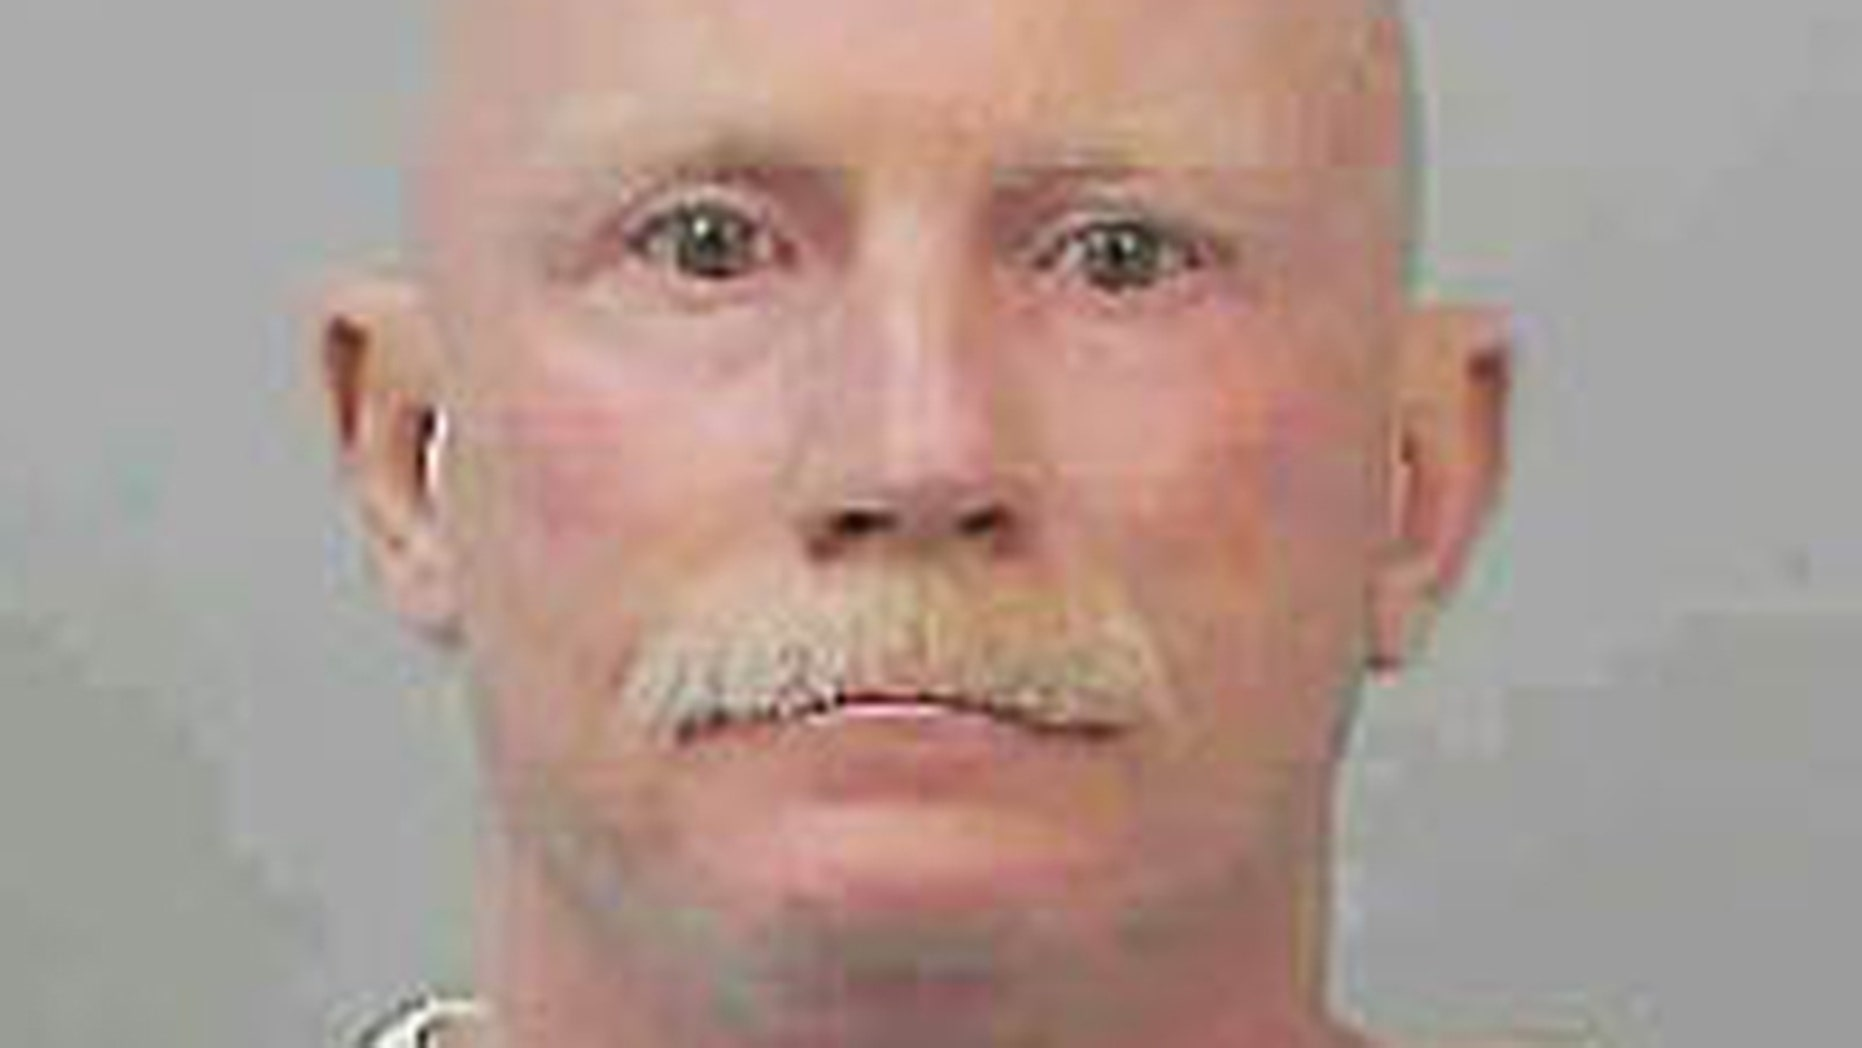 Police identified the suspect in a Walnut Creek, Calif., burglary as as 51-year-old James Murdaugh.